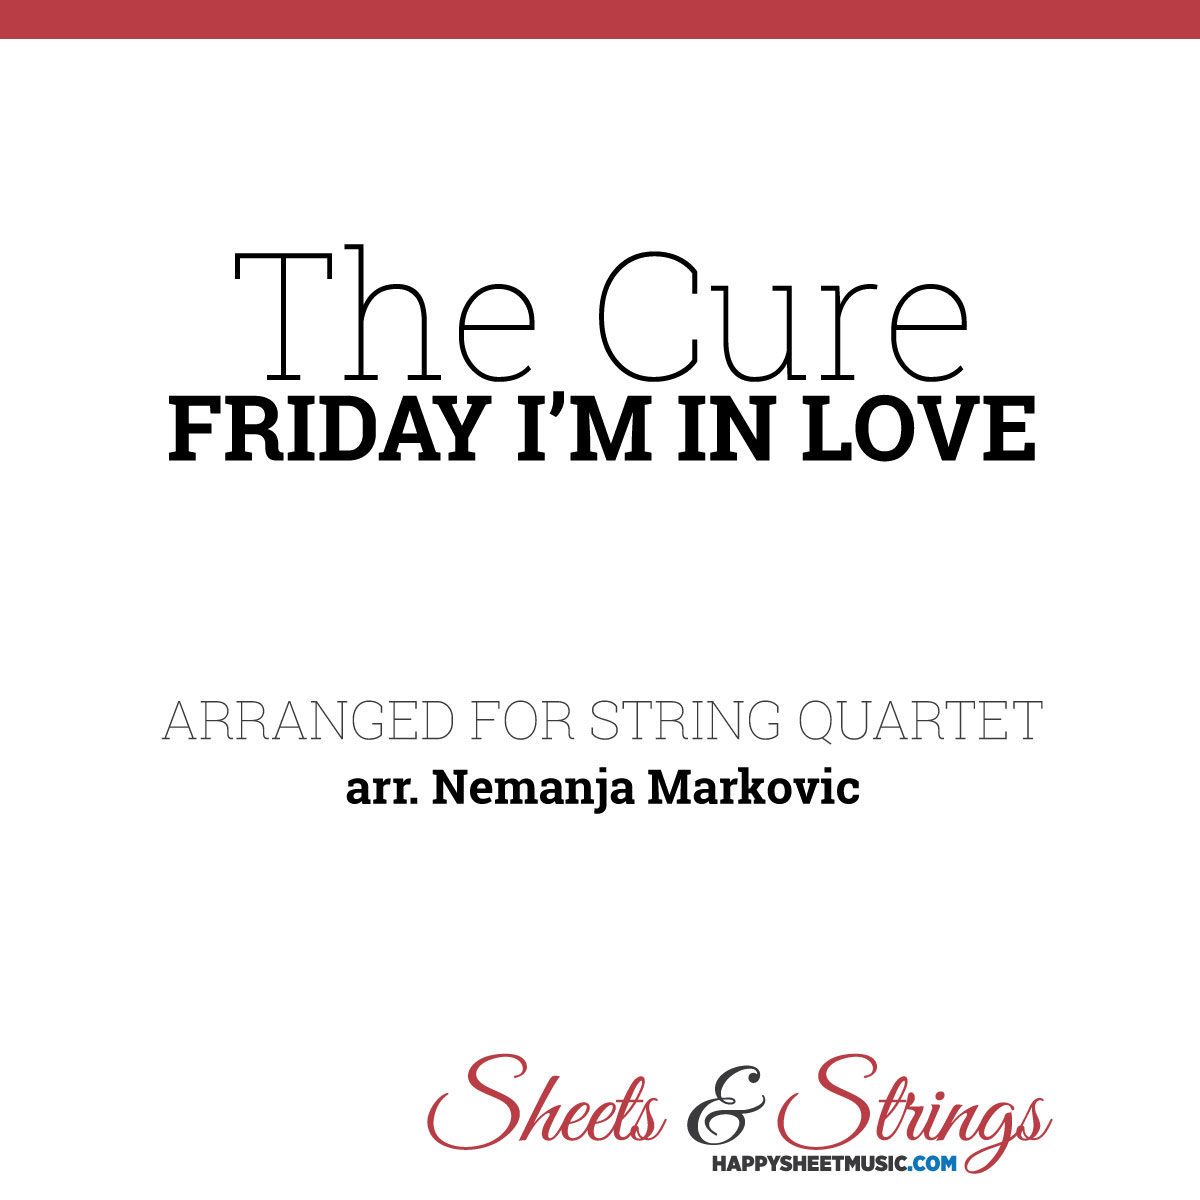 The Cure - Friday I'm In Love - Sheet Music for String Quartet - Music Arrangement for String Quartet